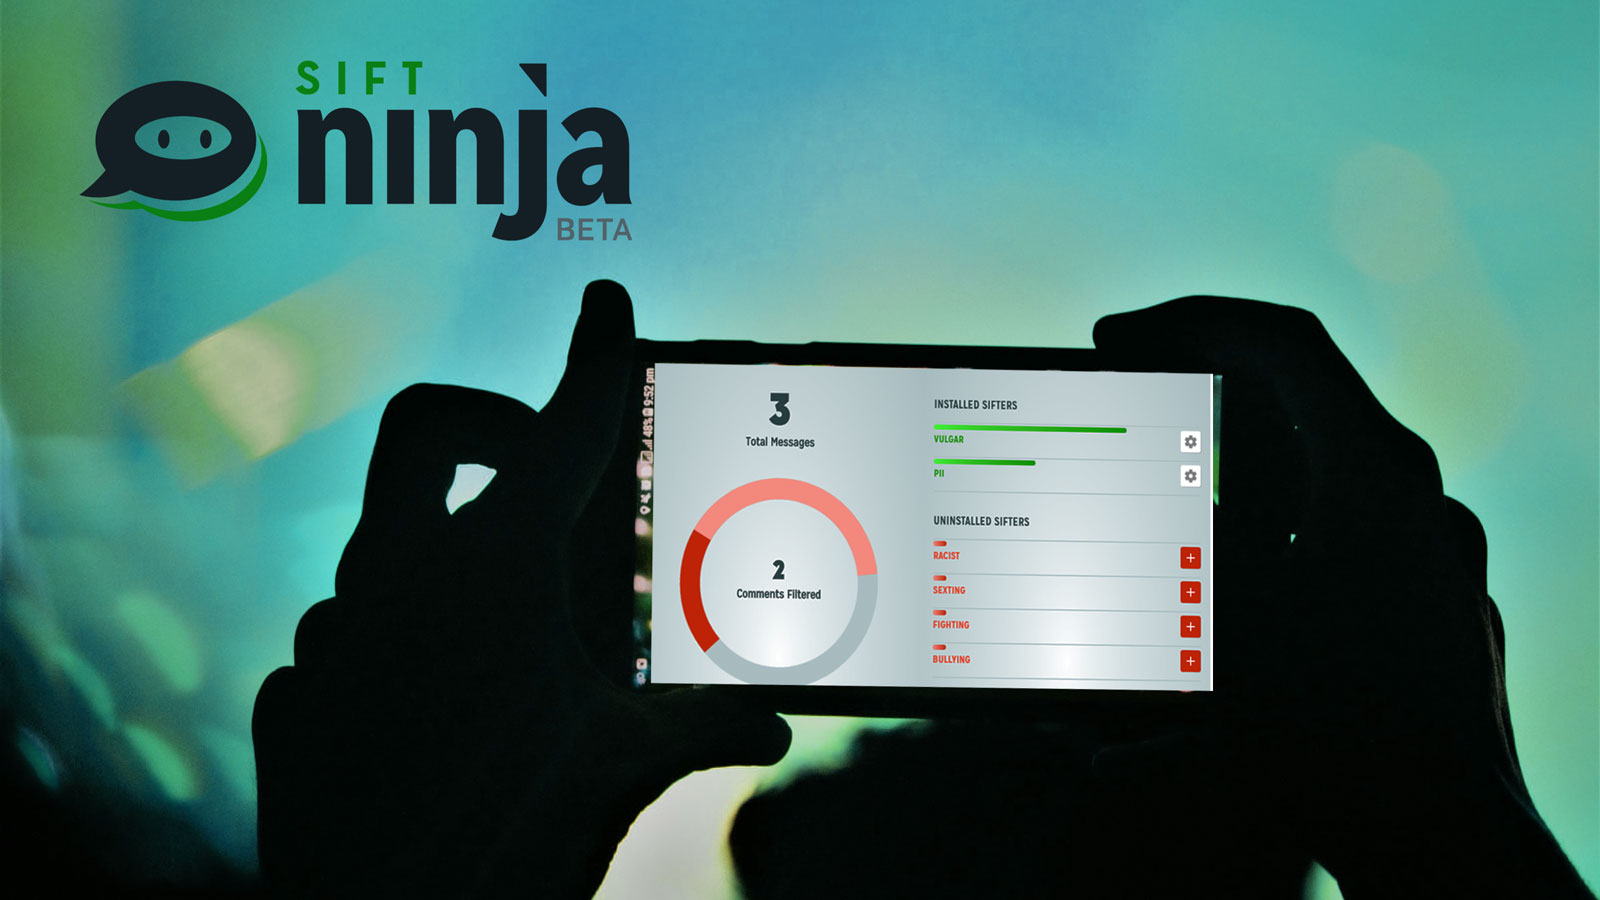 Sift Ninja User Experience Design